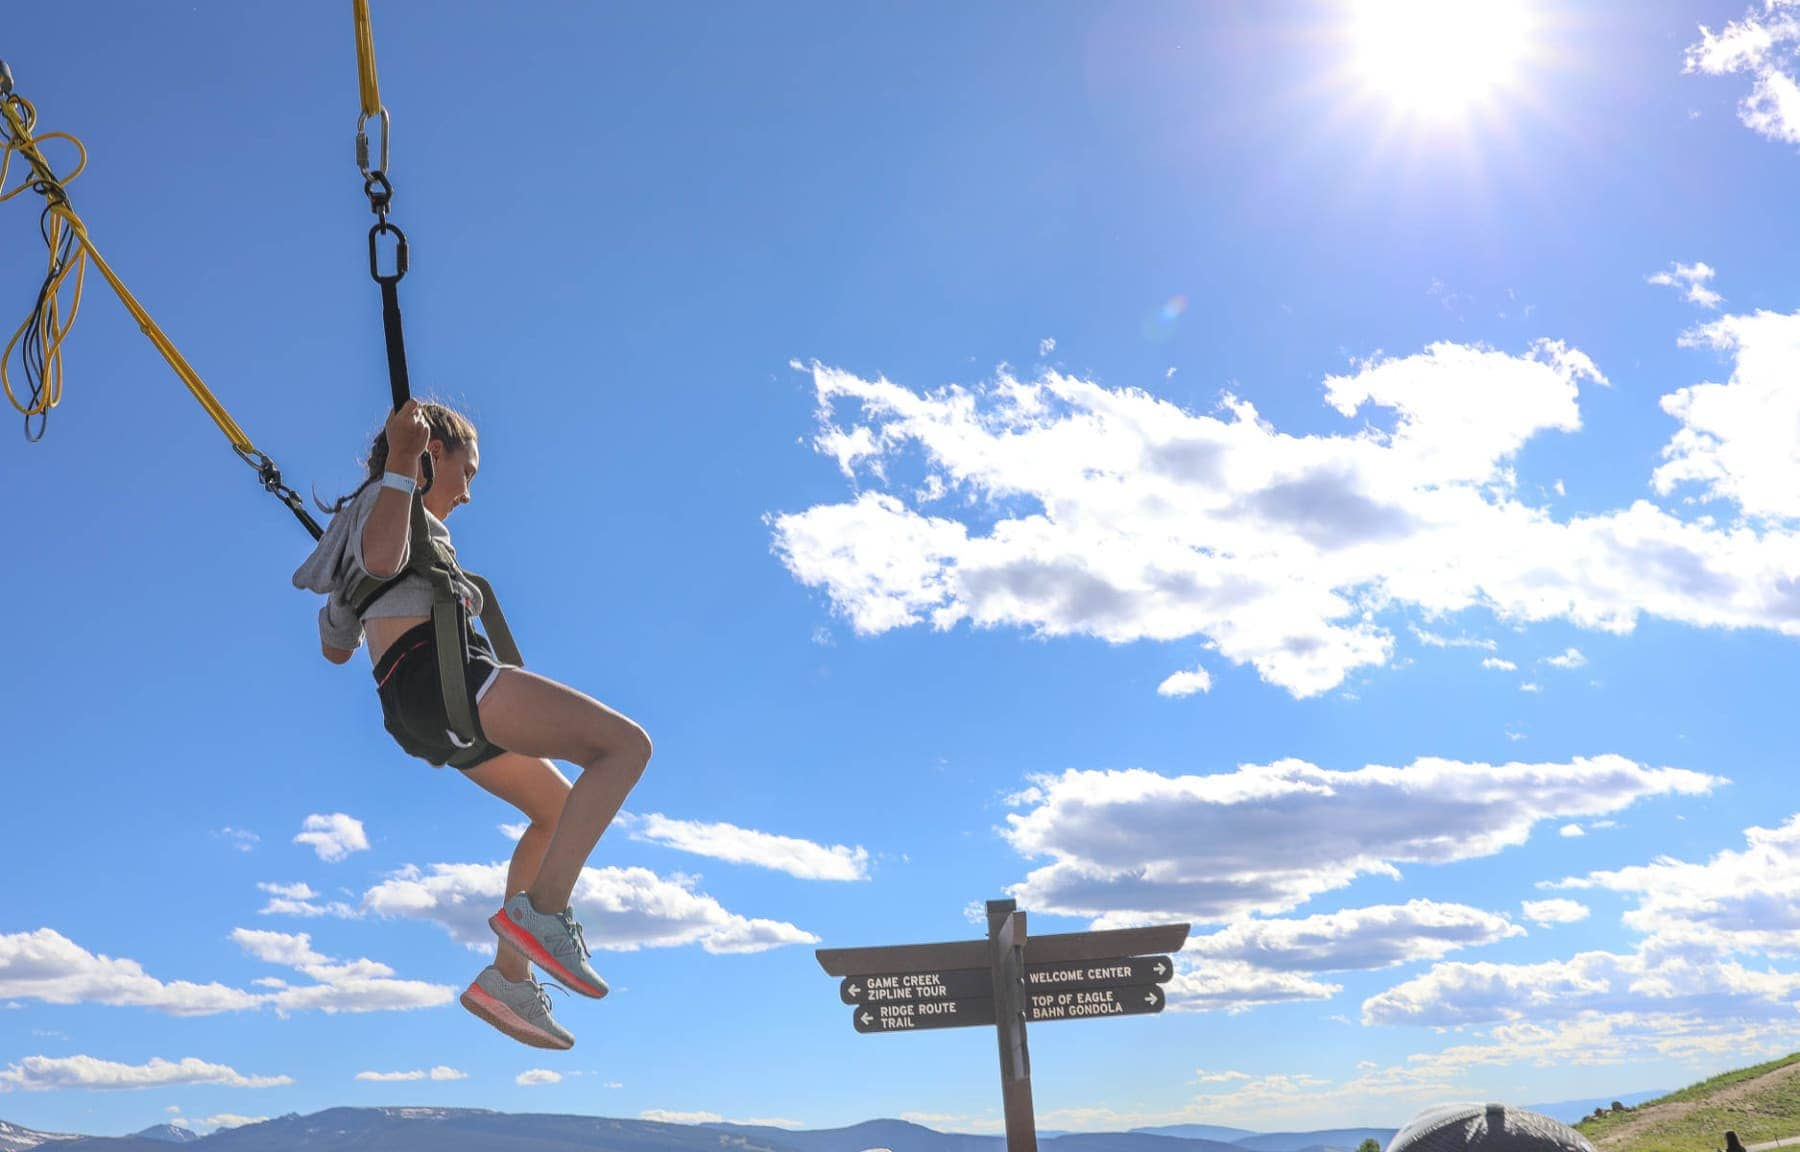 Happy Child Bounces on A Bungee Trampoline #summer #vailcolorado #vacation #citygirlgonemom